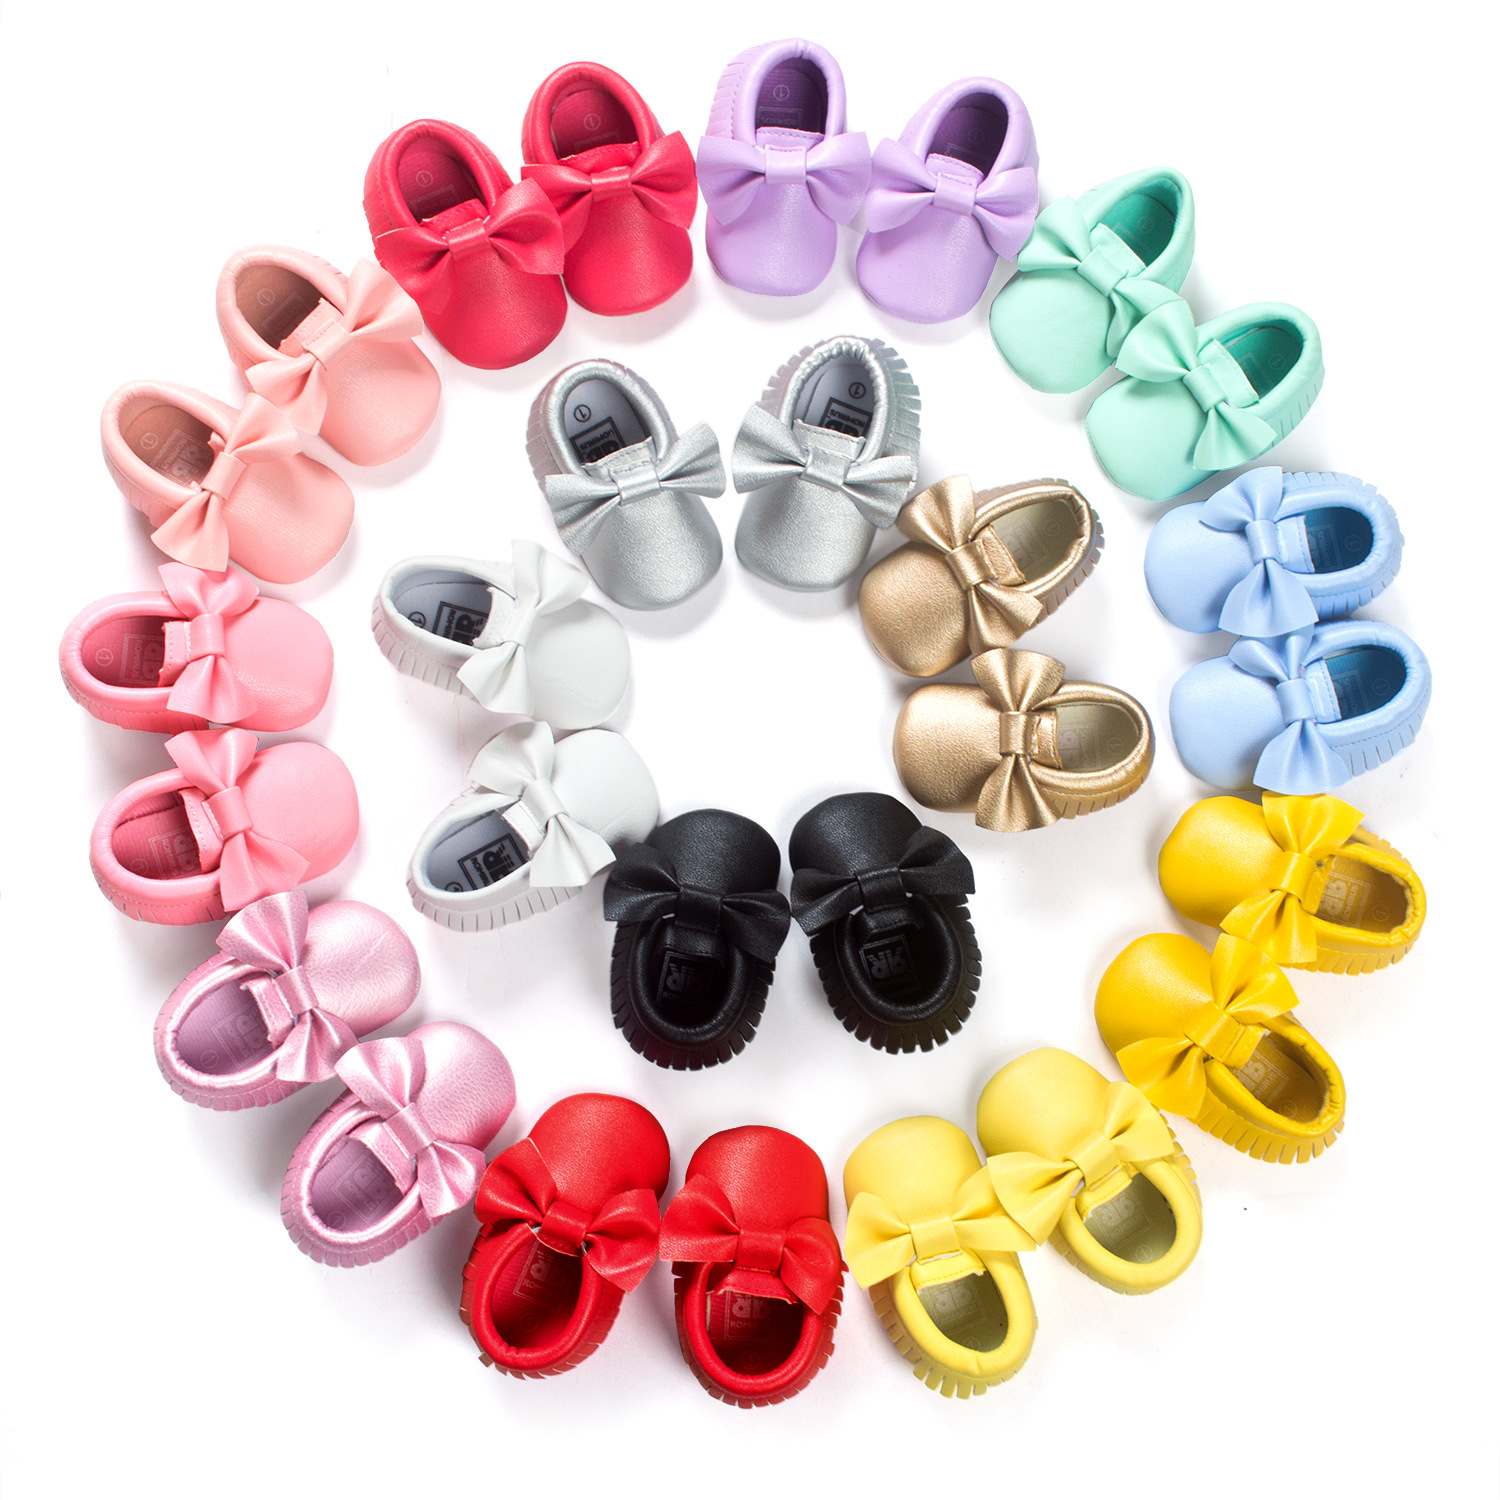 Spring Toddler baby moccasins comfort shoes bow soft sole bowknot tassels toddler shoes baby PU leather shoes baby feetwear 5378